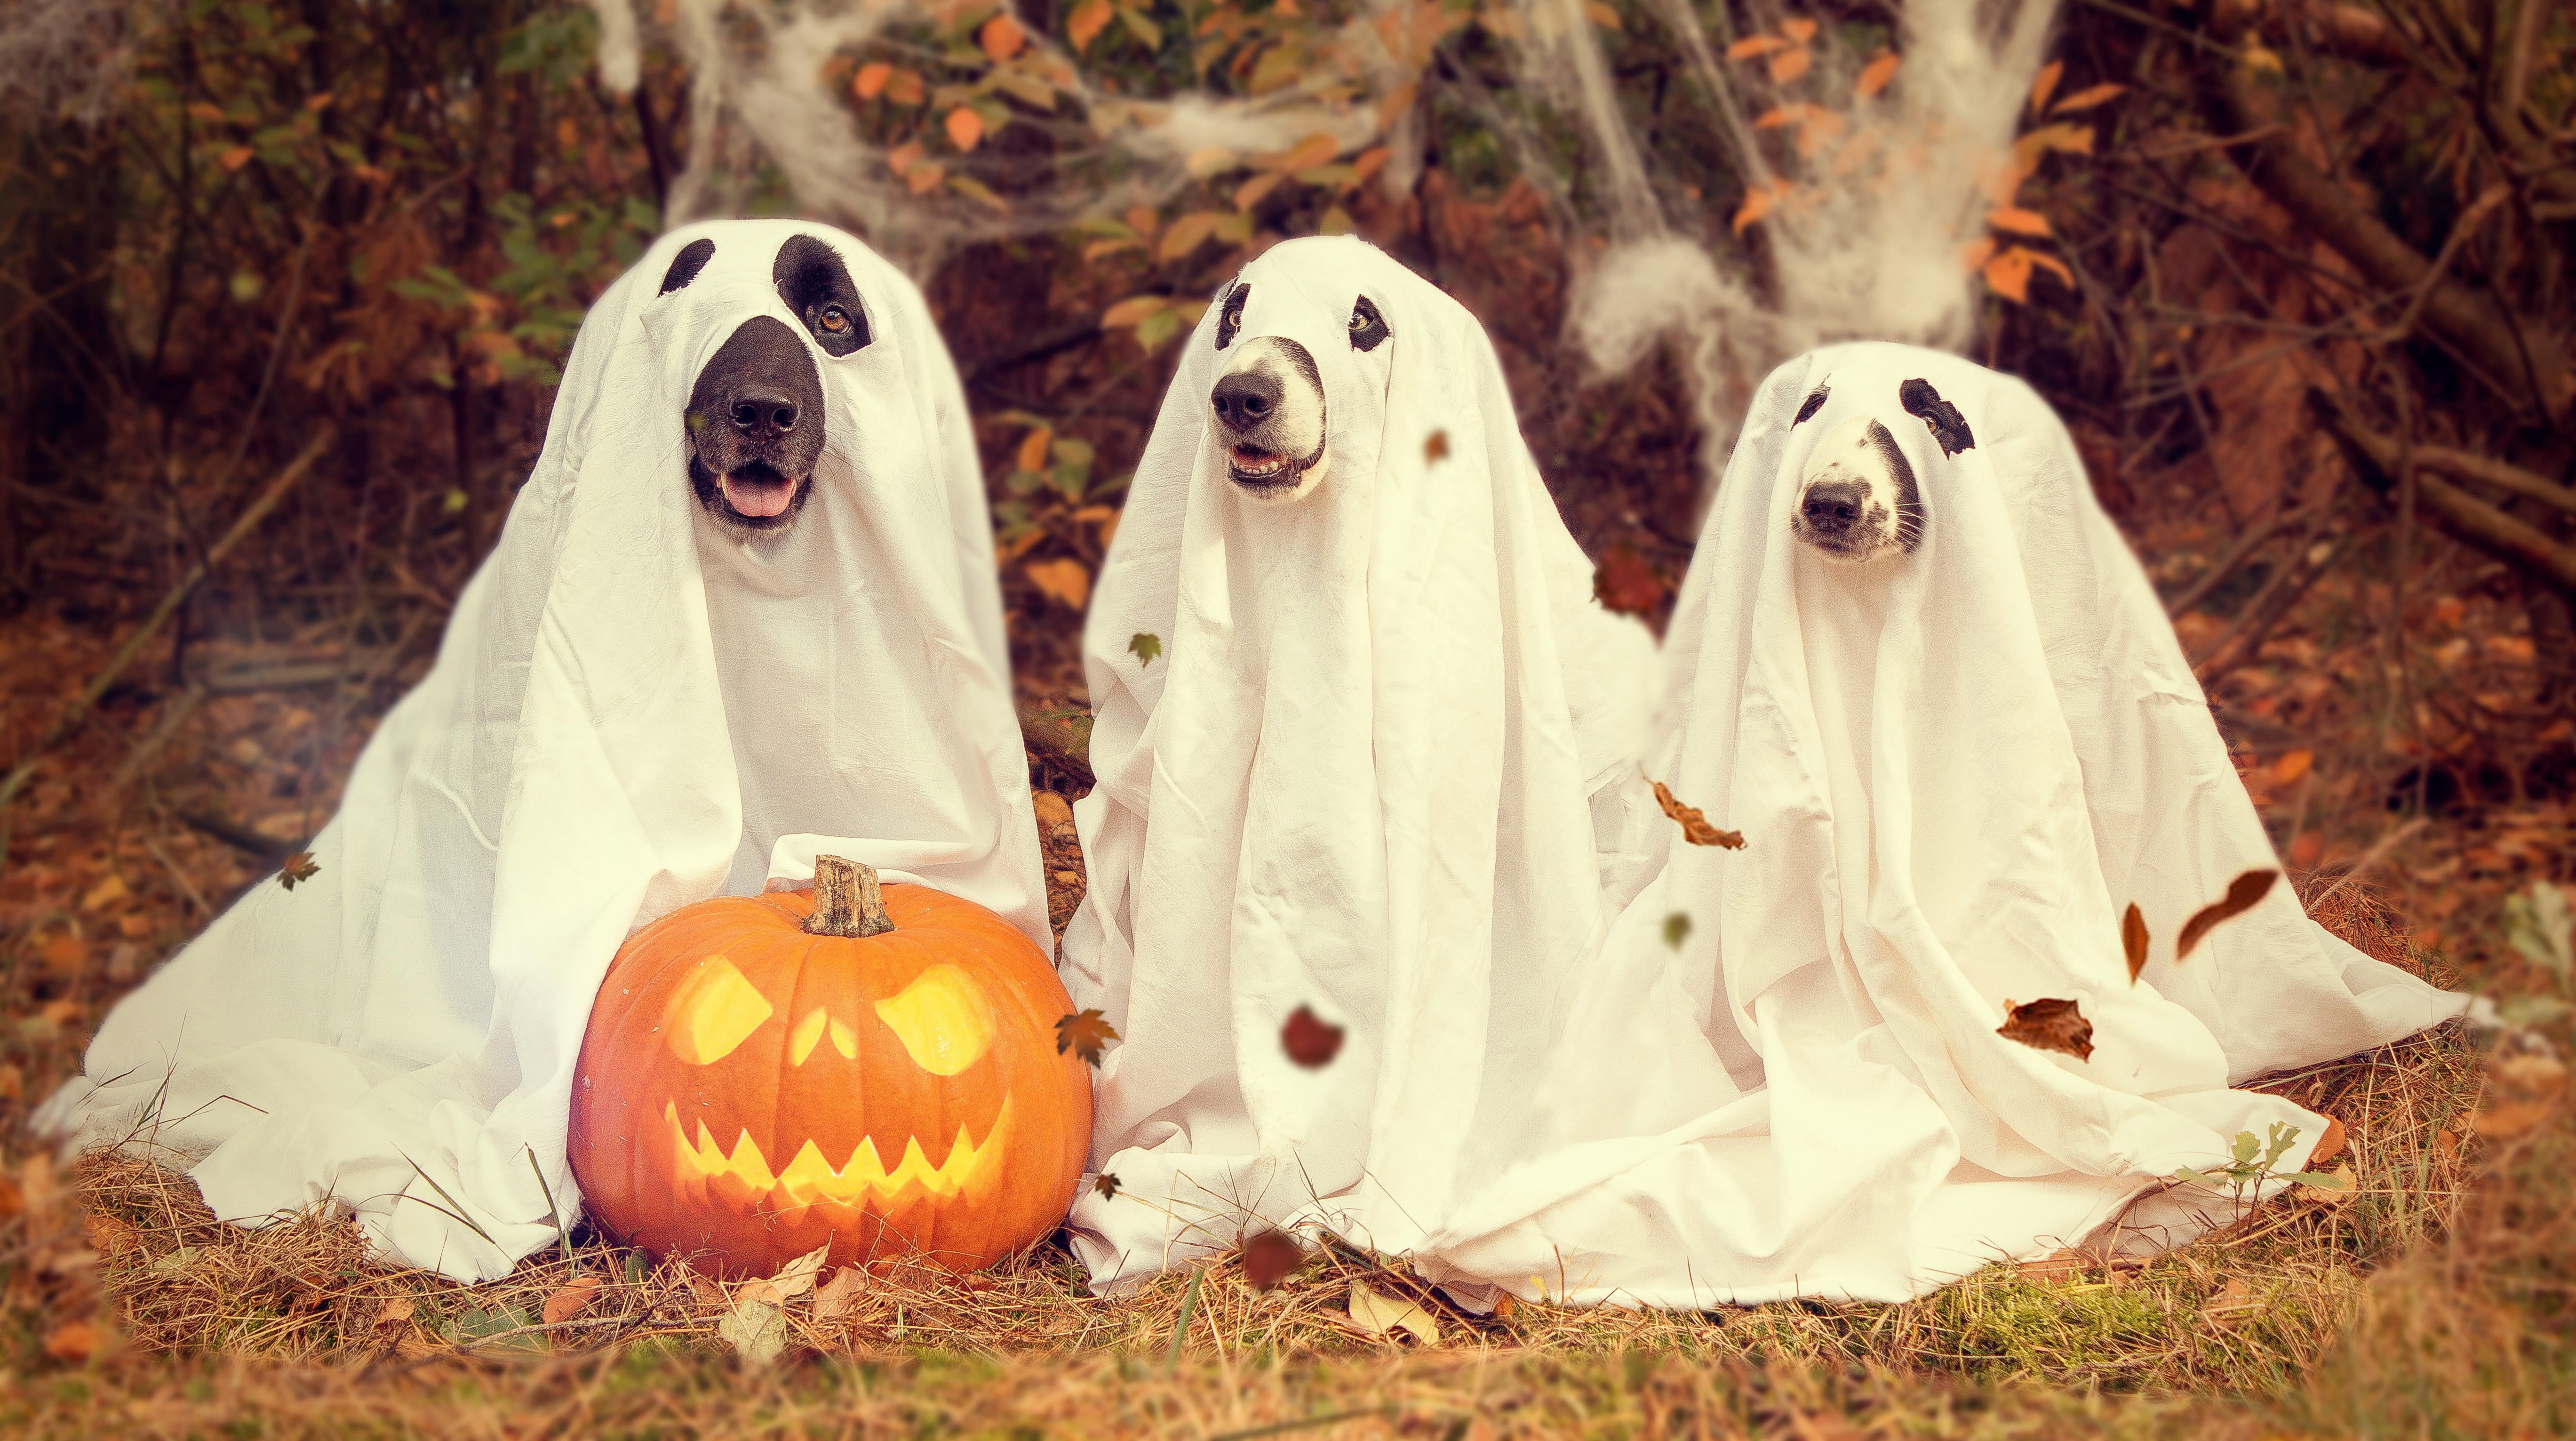 Dogs in Ghost Halloween Costumes image